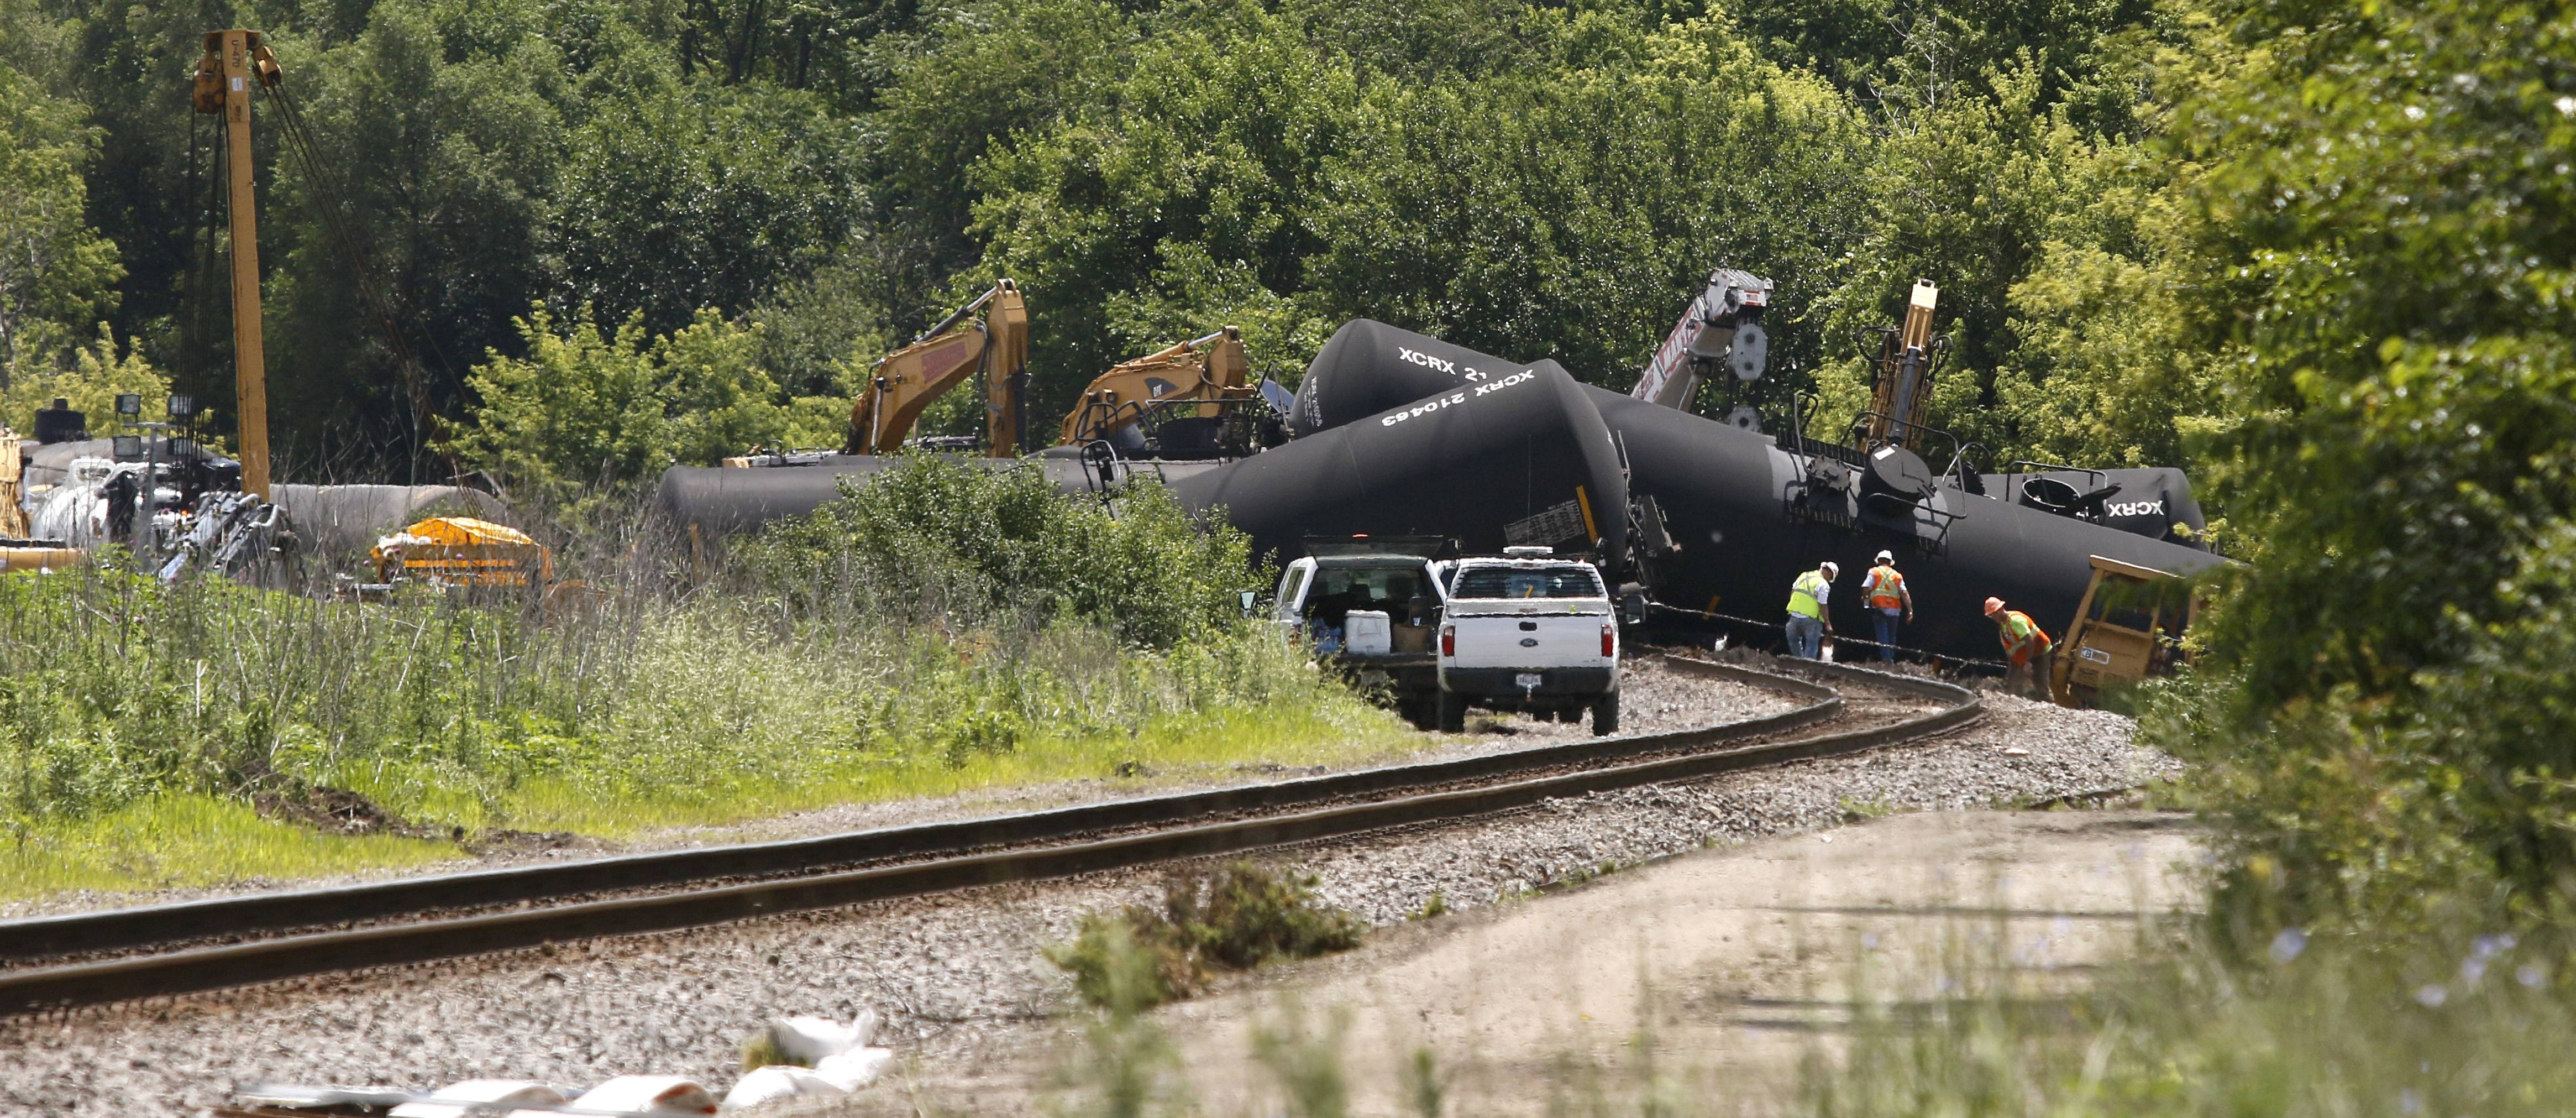 Cleanup work continues after 20 Canadian National Railroad tanker cars derailed in Plainfield. This is the view from the 143rd Street crossing just east of Van Dyke Road.